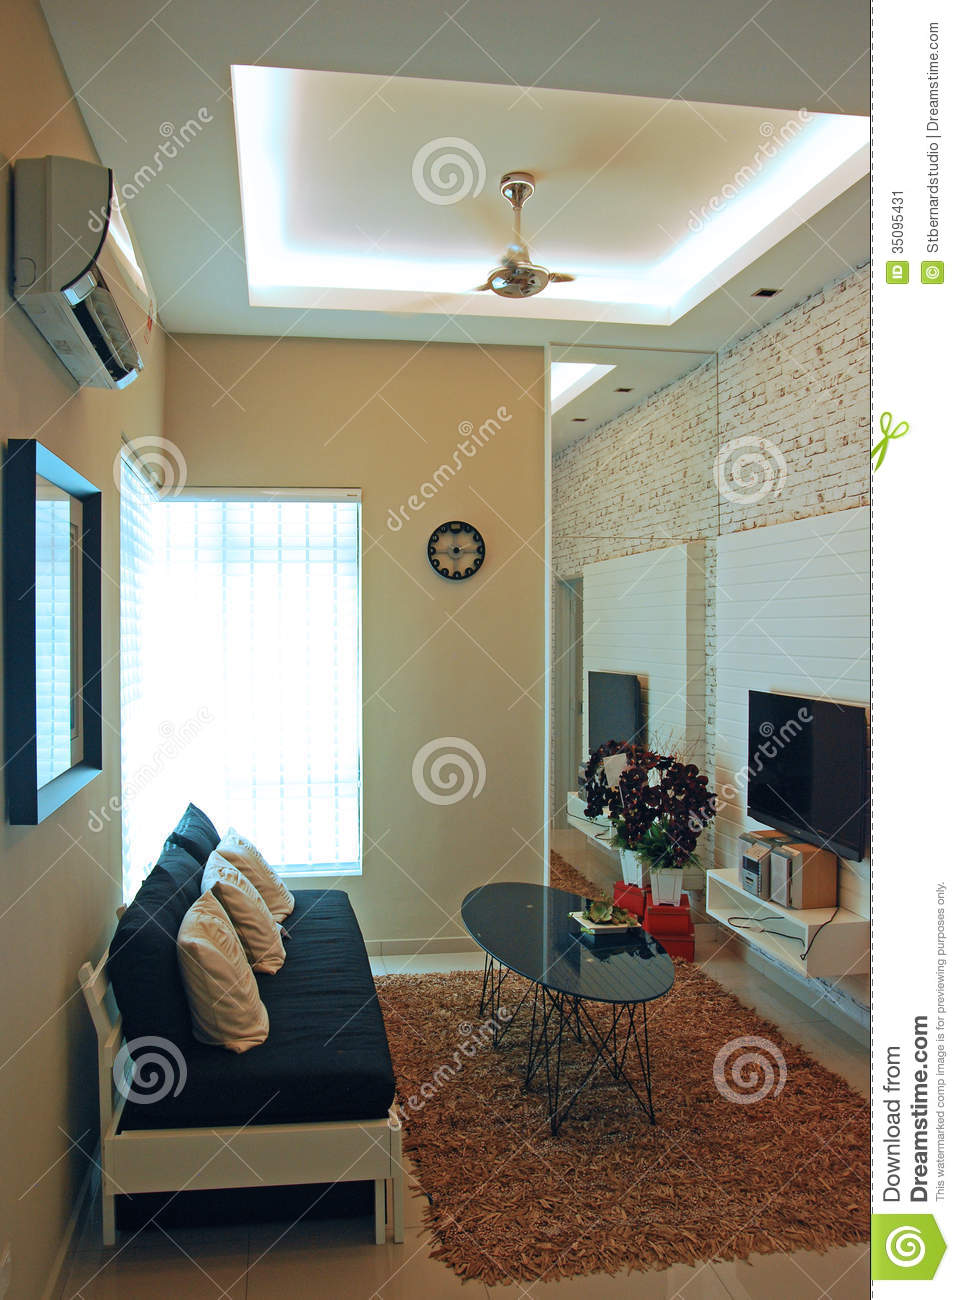 A compact living room design stock image image 35095431 Design a room laout